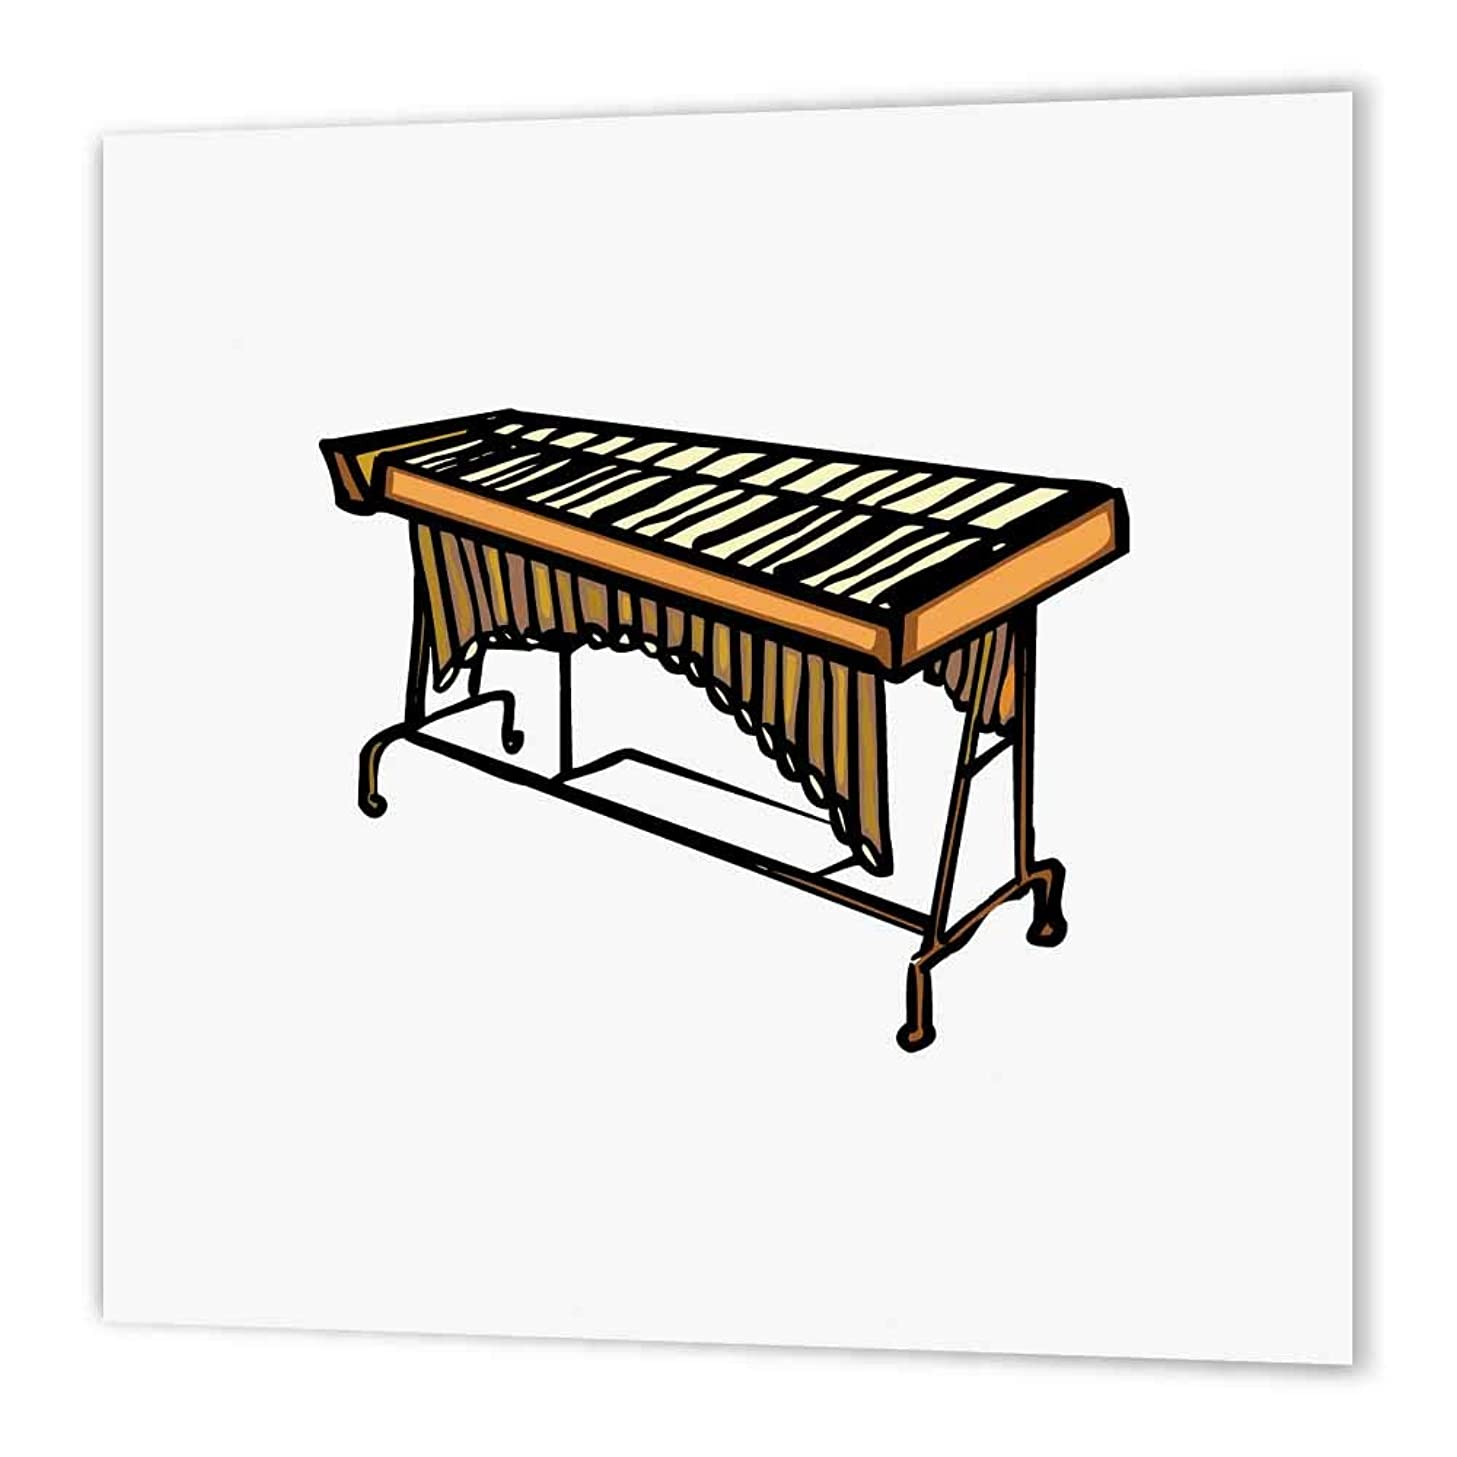 3dRose ht_164443_2 Vibraphone Simple Instrument Design-Iron on Heat Transfer Paper for White Material, 6 by 6-Inch